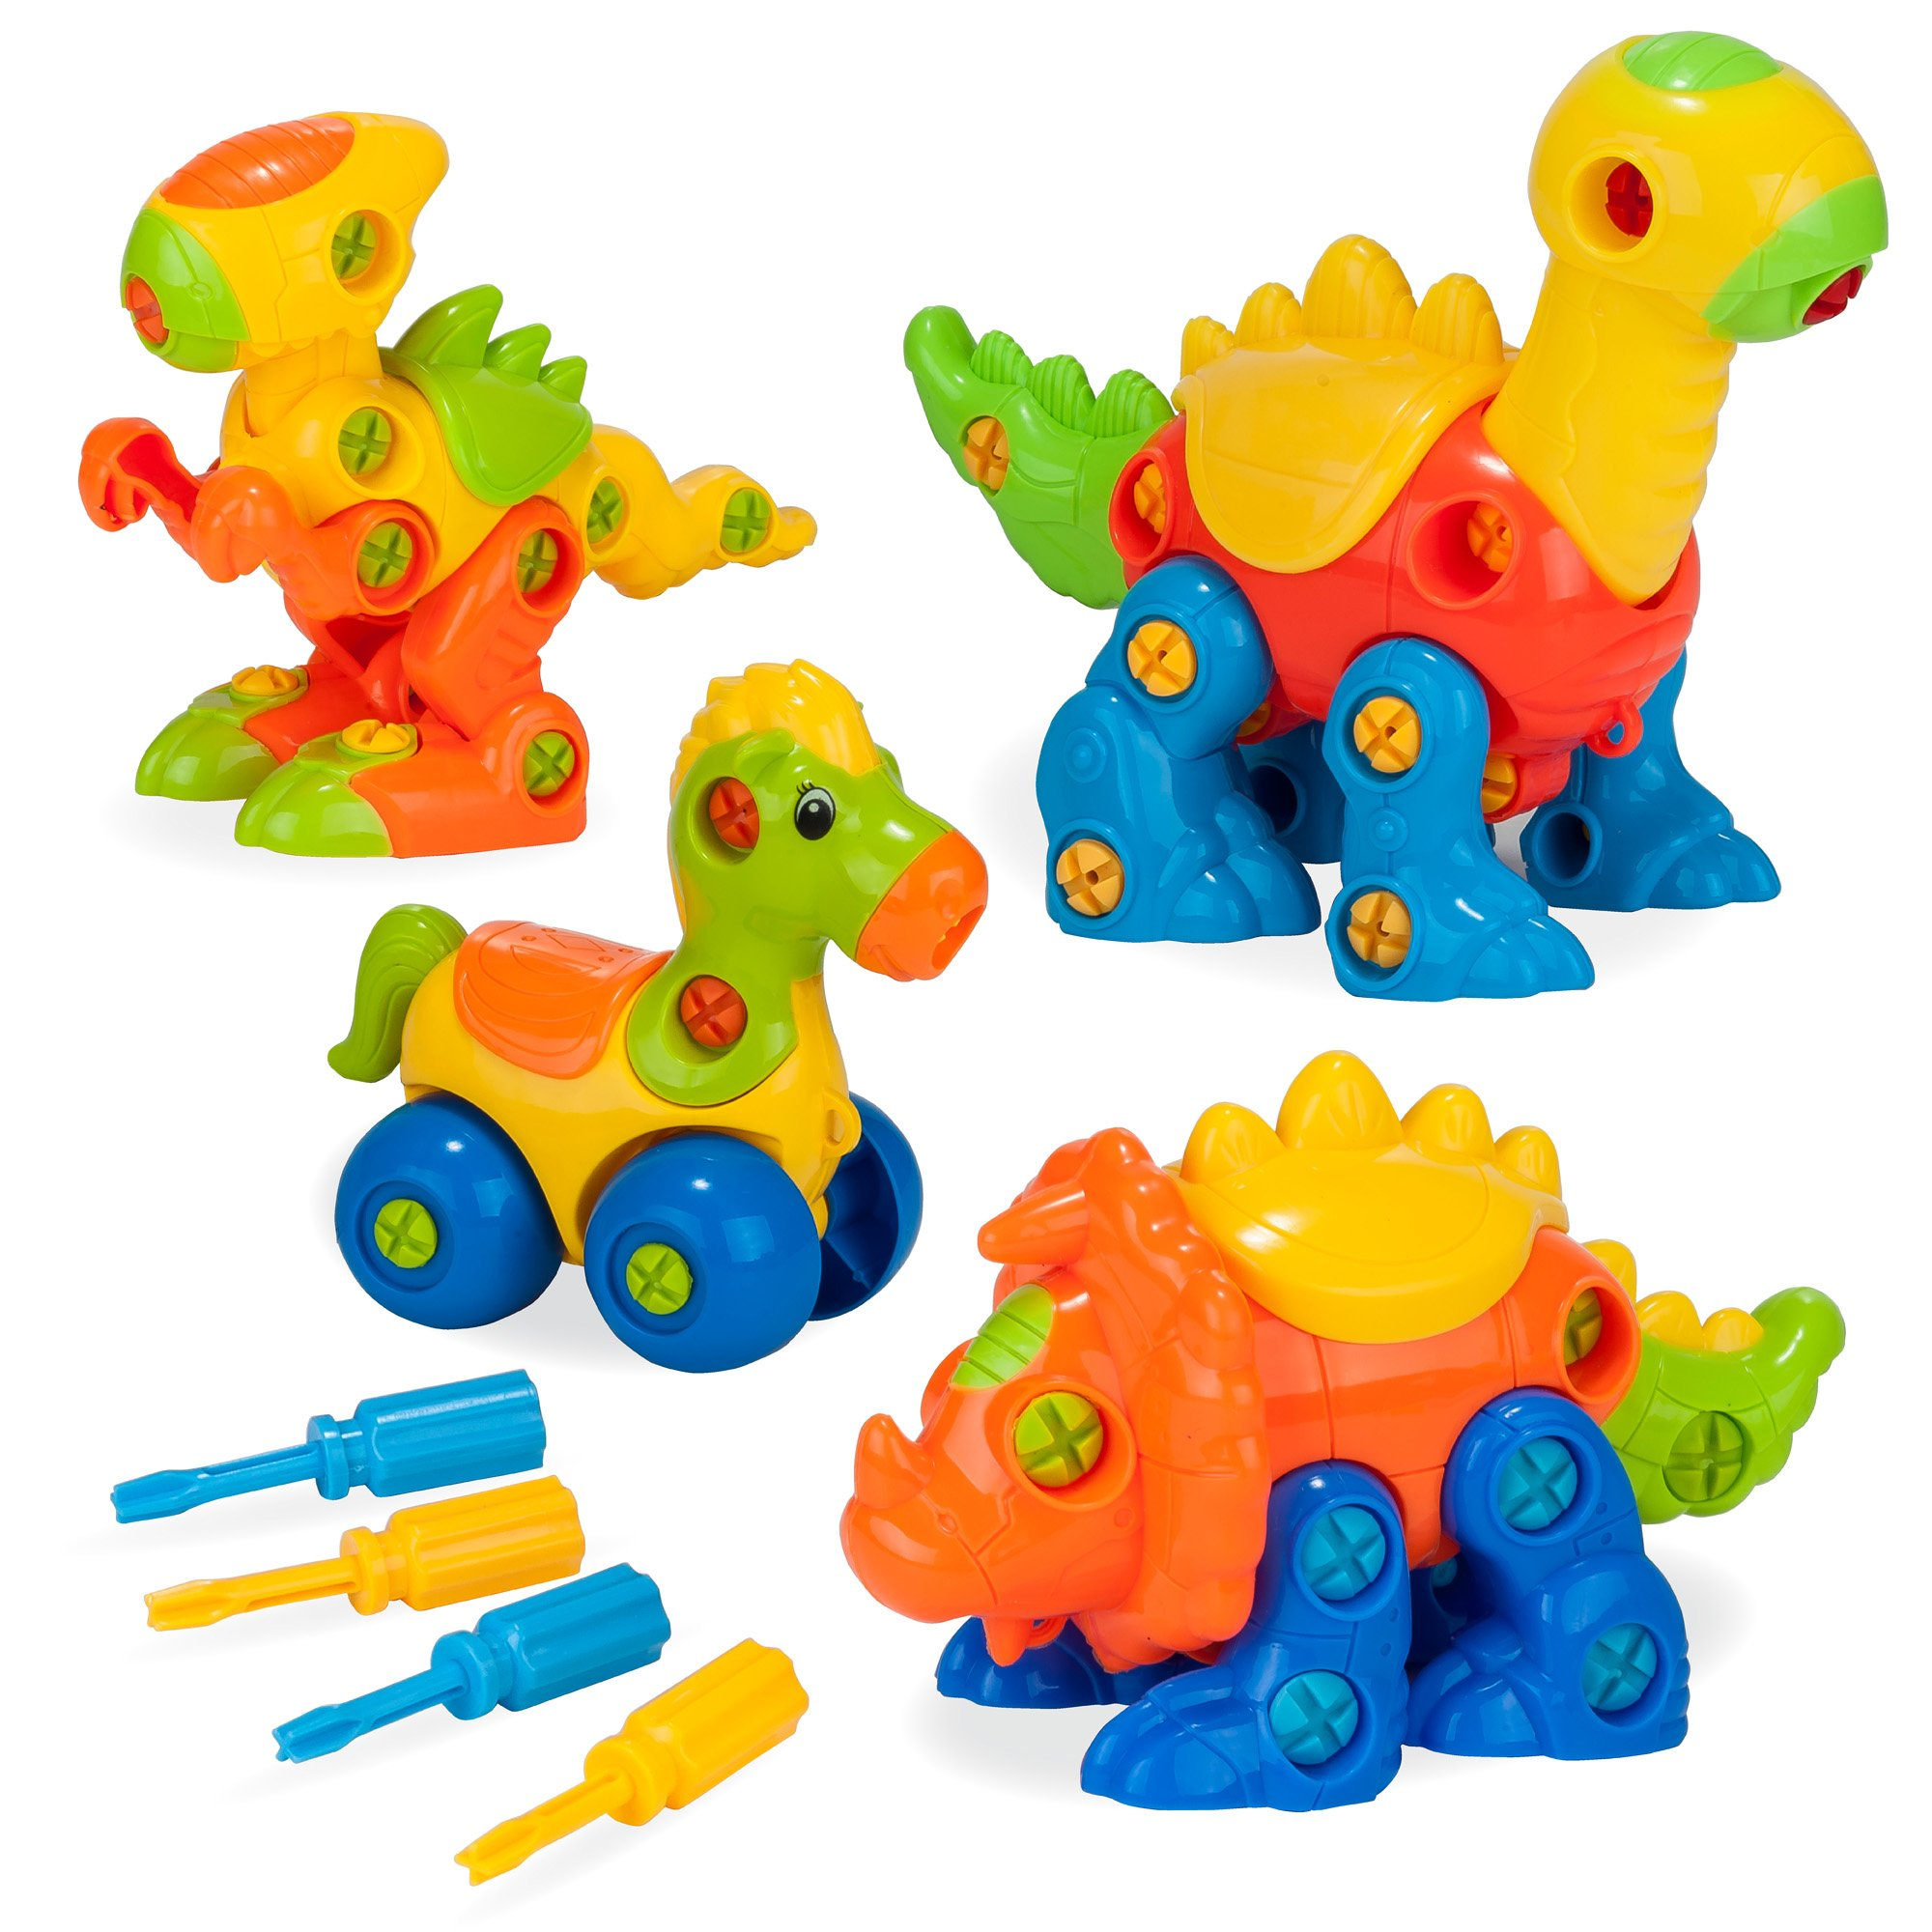 Creative Kids Build & Learn Dinosaur Toys - Interlocking Model STEM Play Set for Kids w/4 Buildable Dinosaurs & 4 Screwdriver Tools - Educational Construction Kit for Preschool, Kindergarten, Age 3+